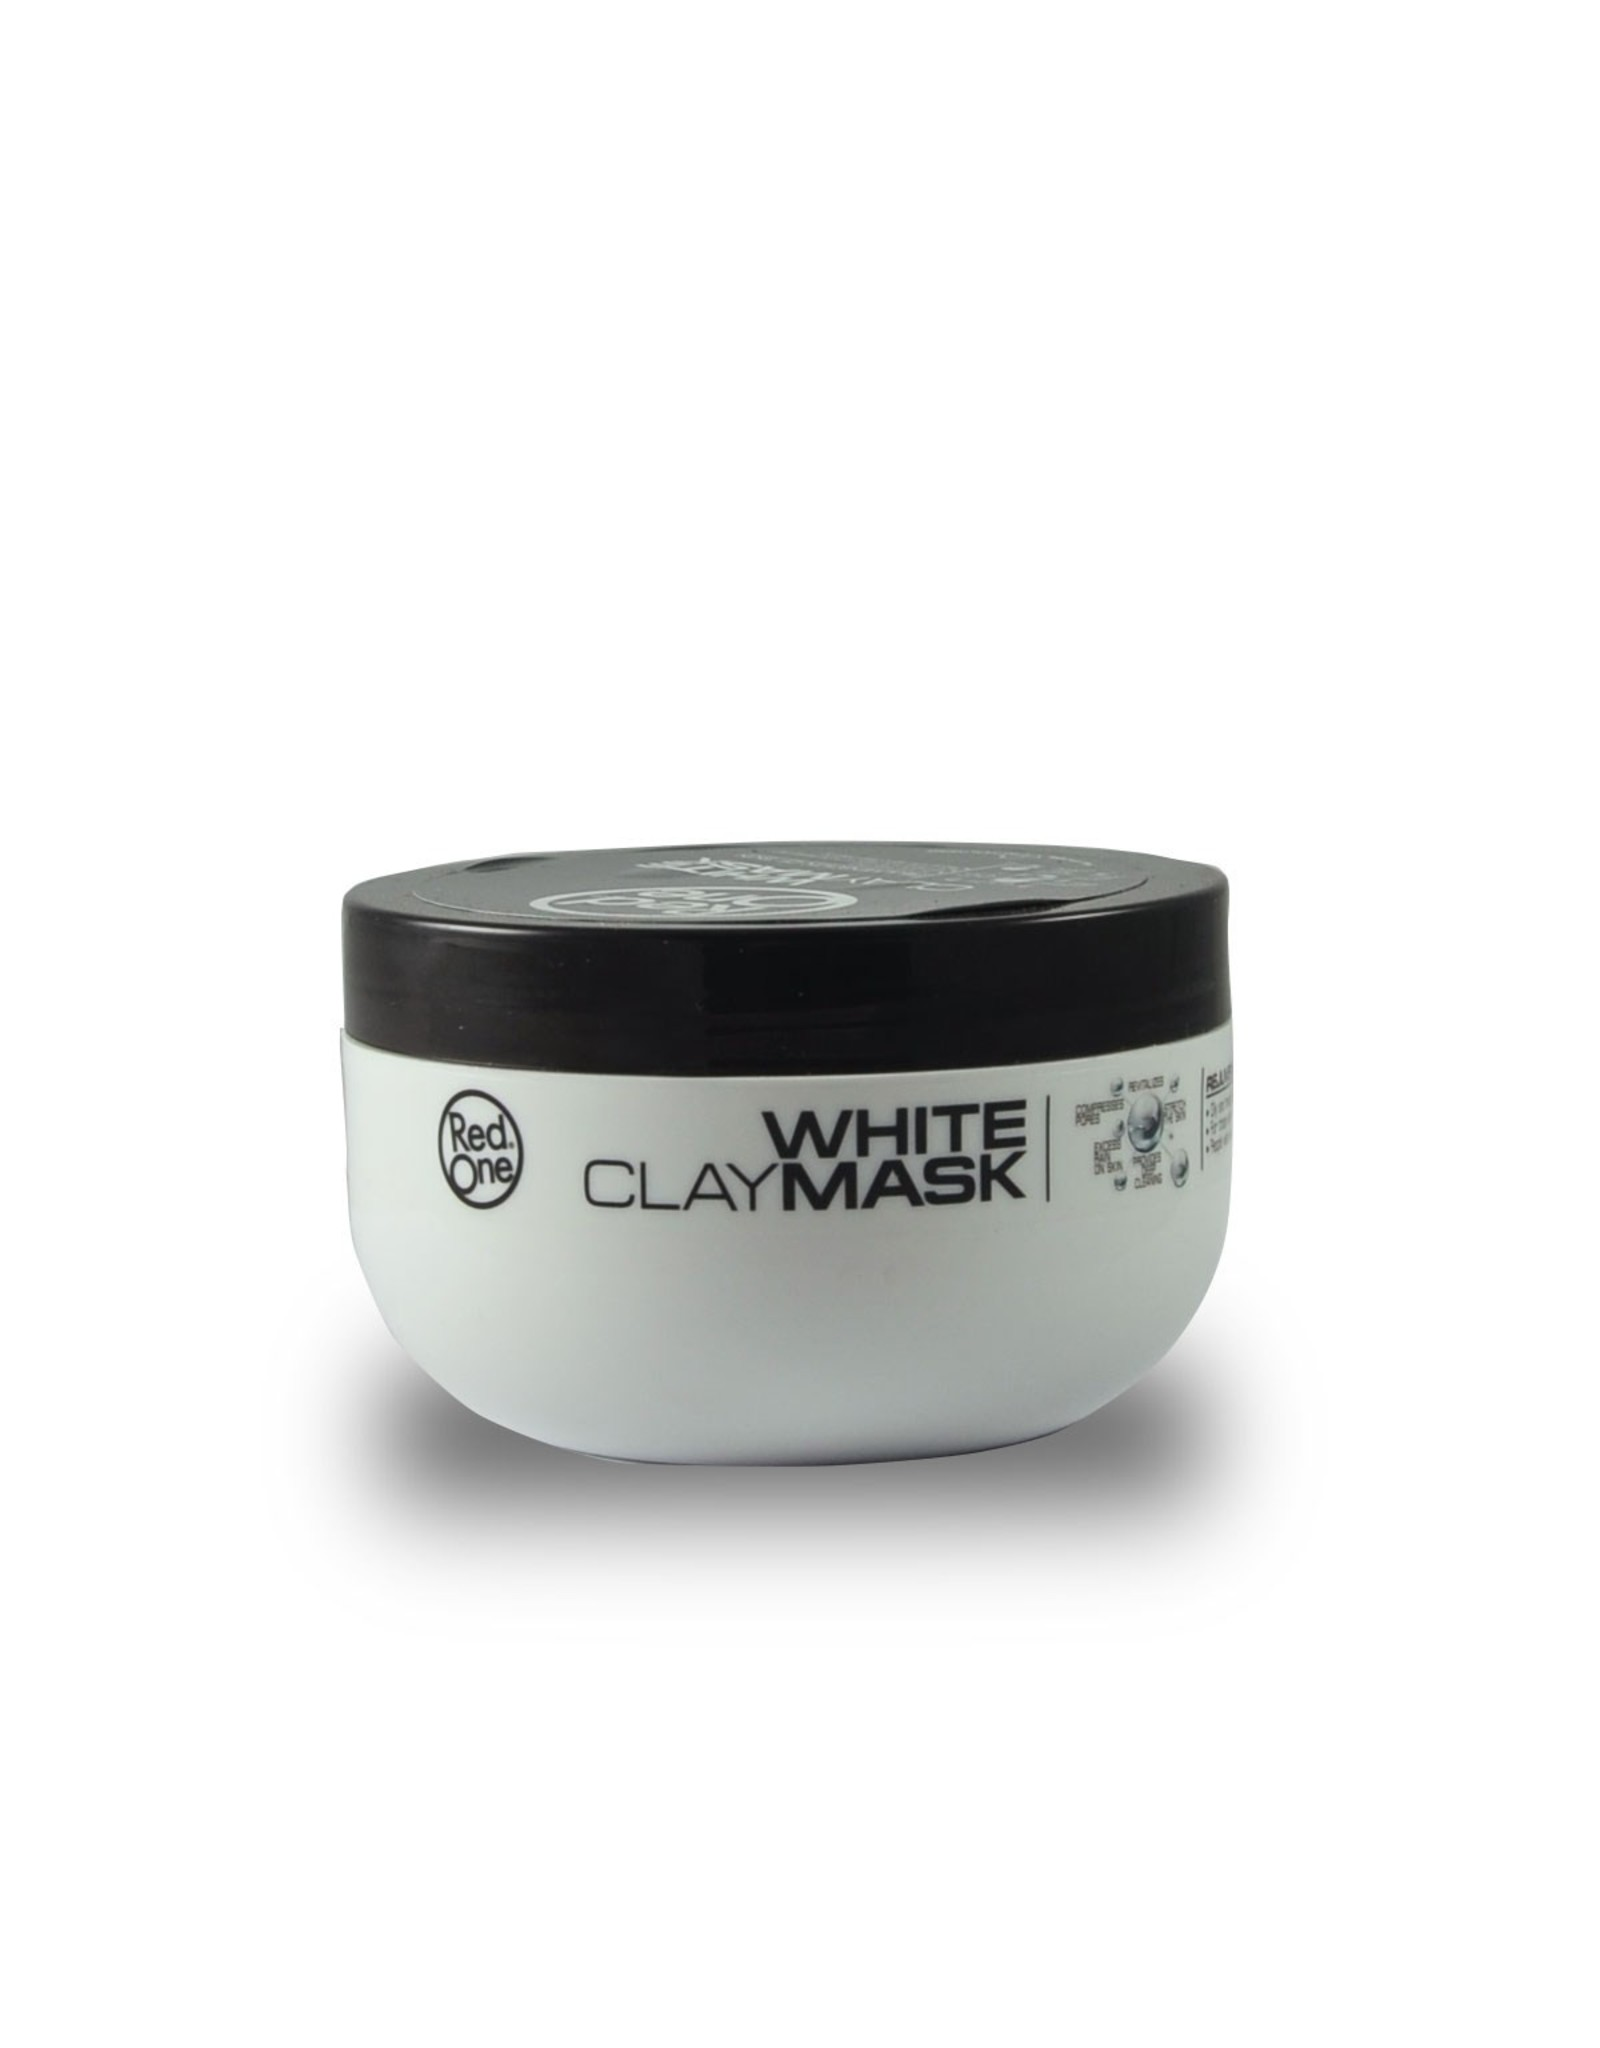 Red One Clay Mask Mint & White Mask